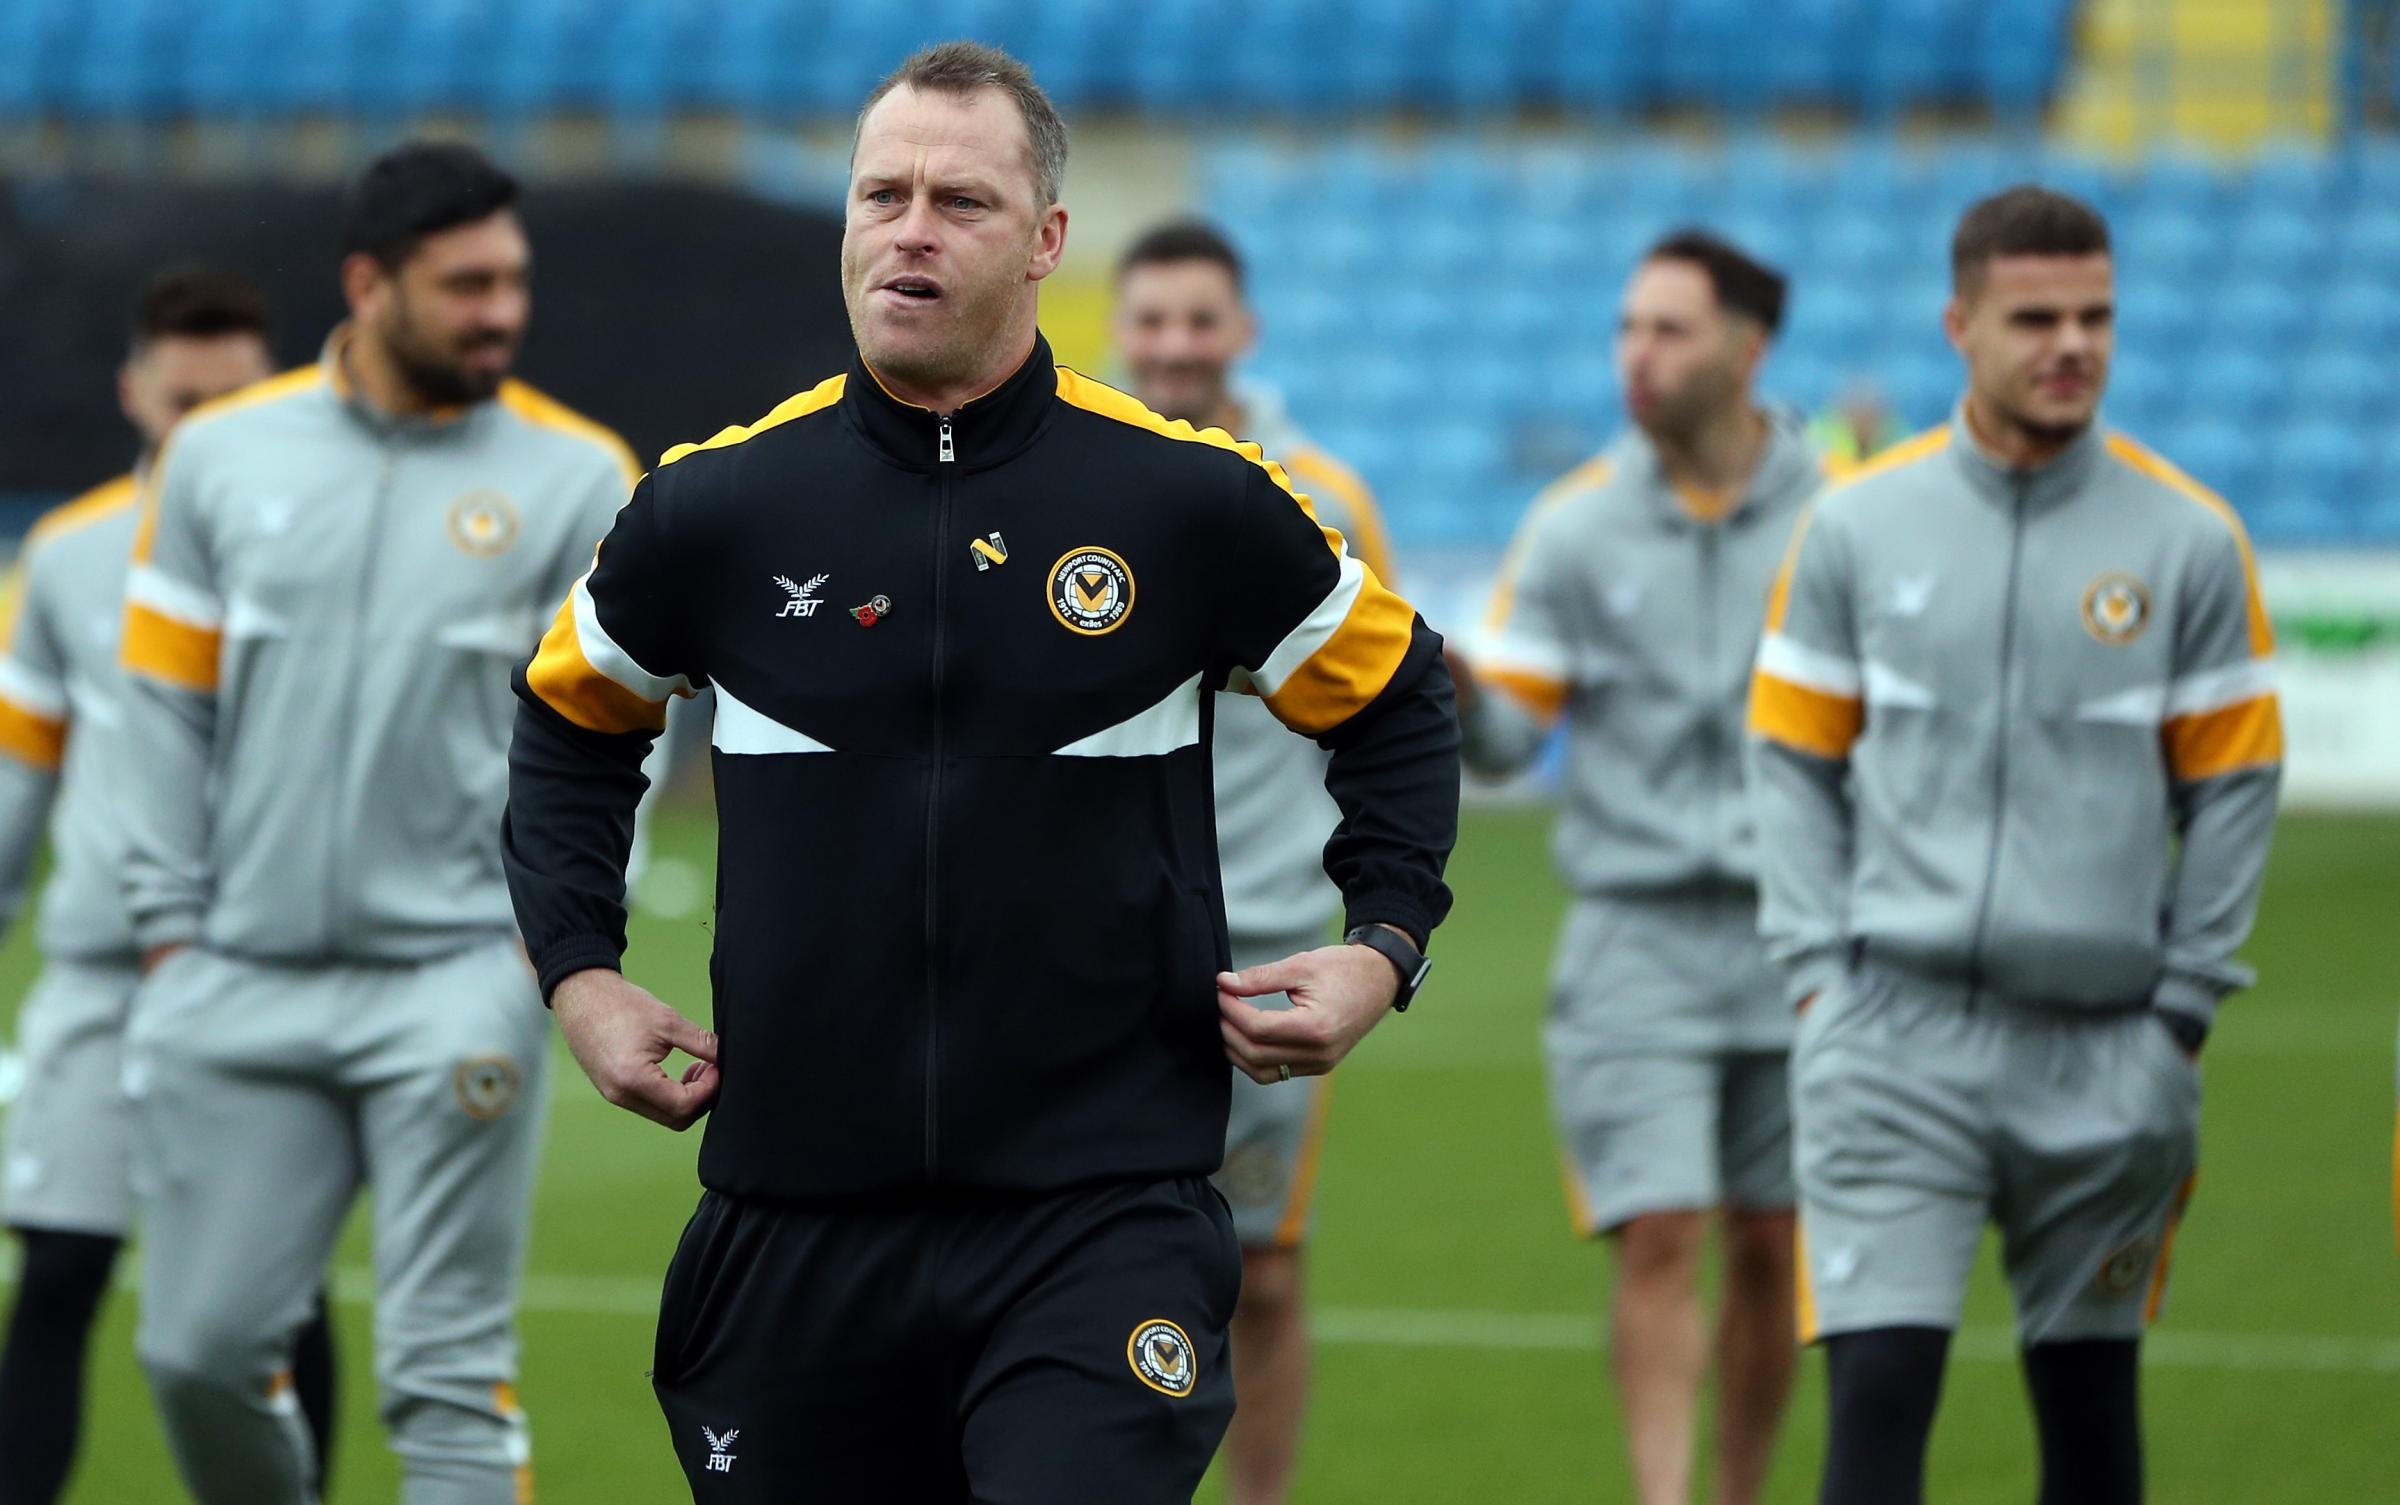 DECISIONS: Newport County manager Michael Flynn has plenty of options for today's trip to Swindon Town